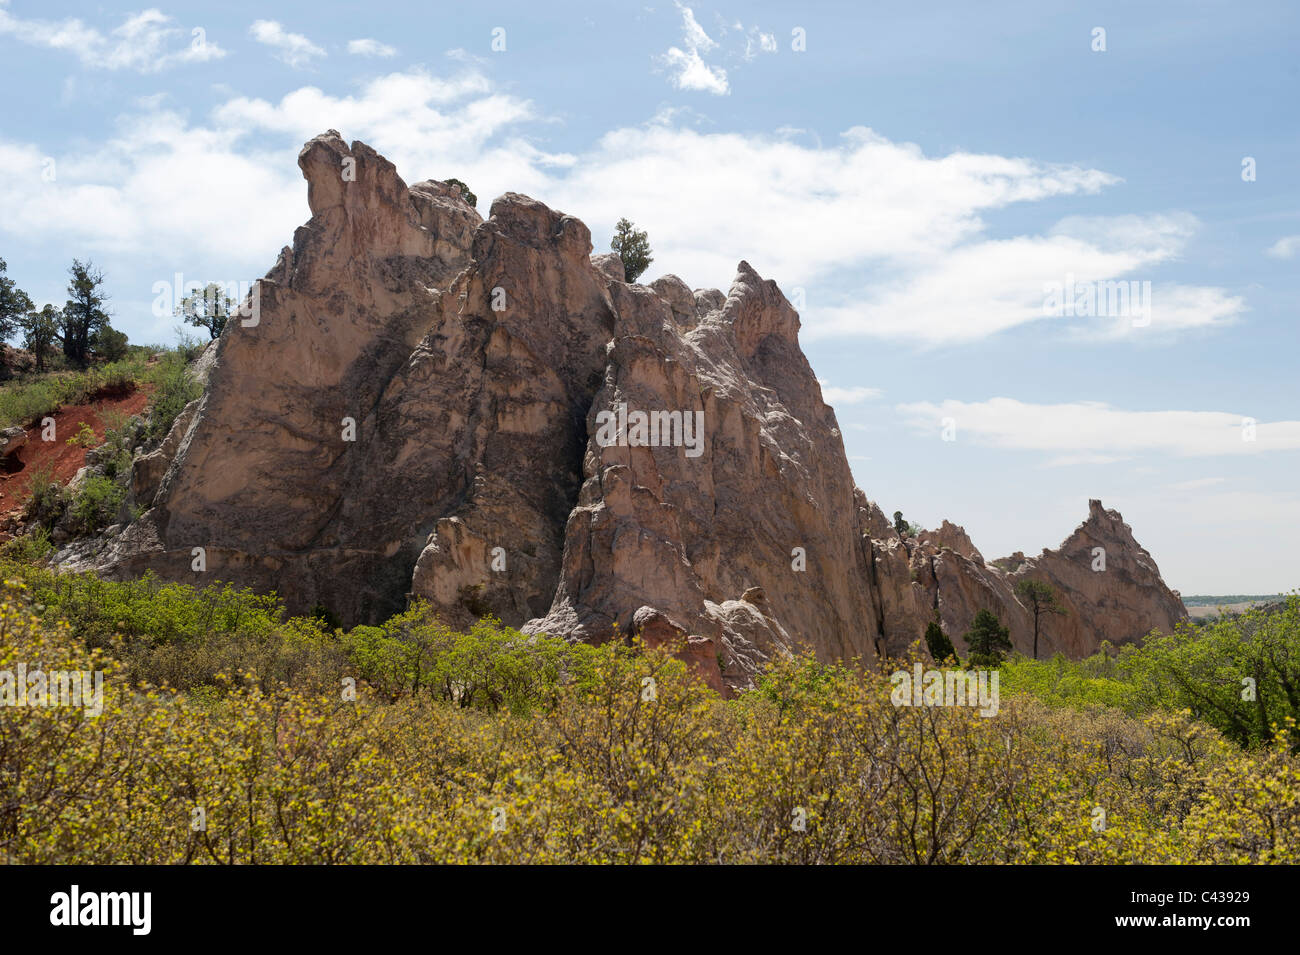 The feature known as White Rock, in the Garden of the Gods, Colorado Springs, CO Stock Photo